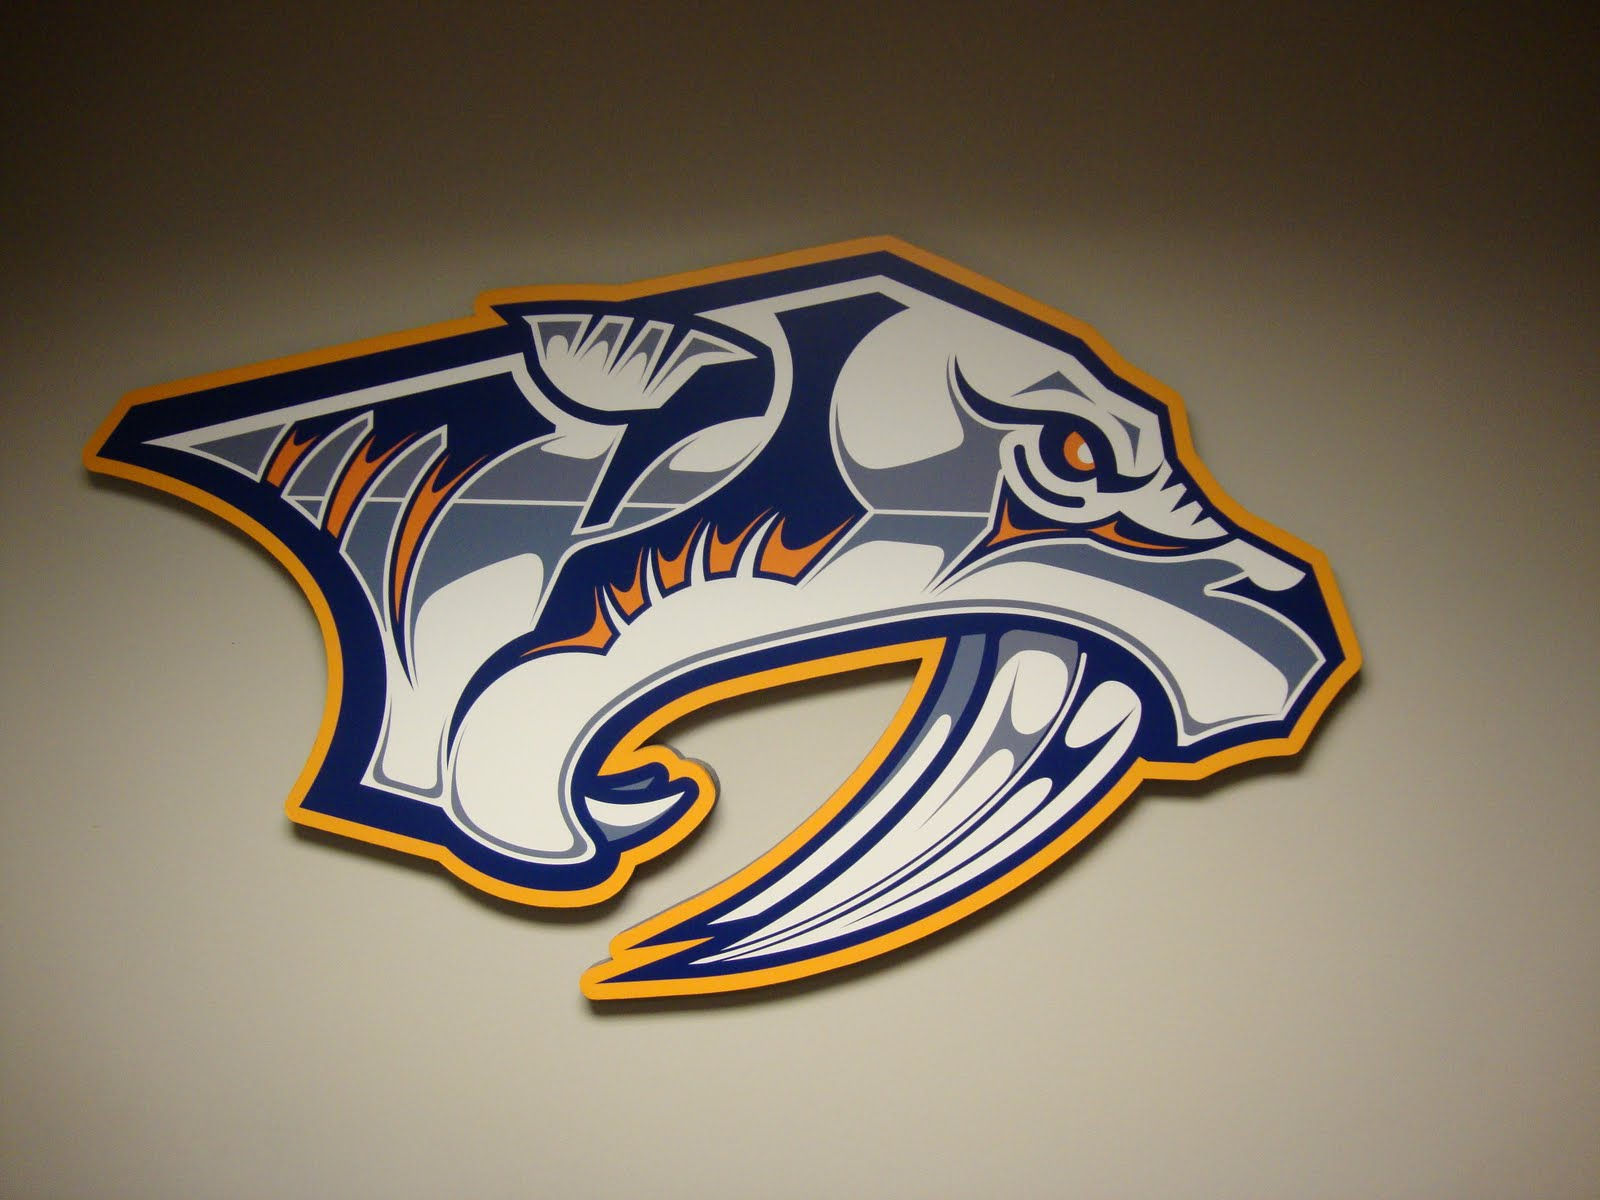 WKRN - Official Site Pictures of nashville predators